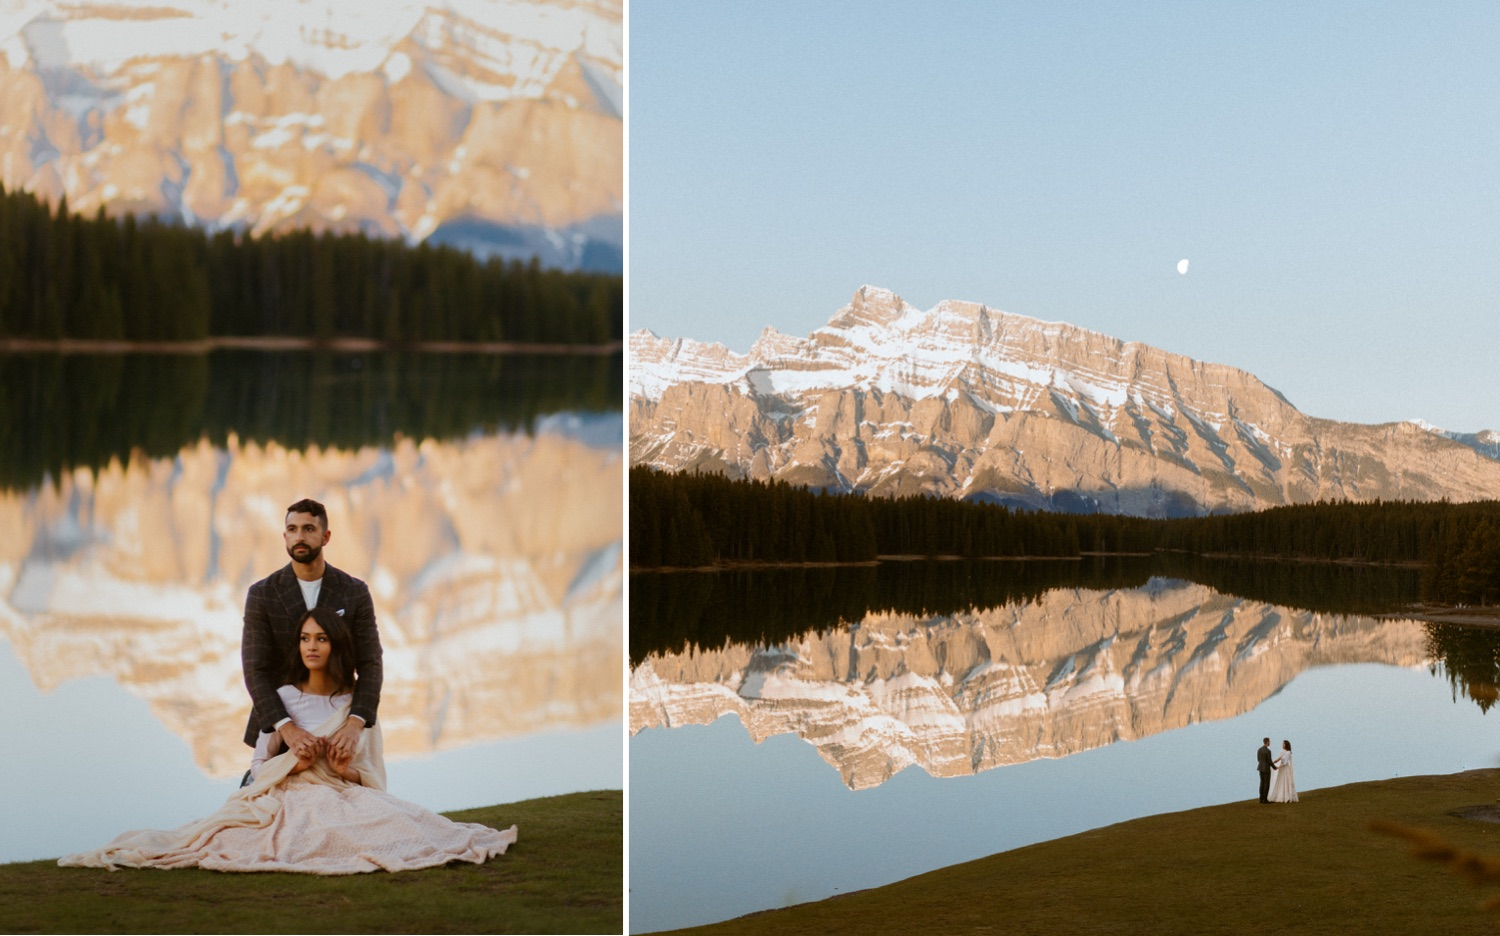 Engagement Photos in Banff at a Beautiful Lake with couple dressed up in bollywood Indian clothes for their engagement photoshoot with flowy lengha dress and suit near the mountains in Calgary Banff Alberta during a beautiful sunrise, Engagement photos, Engagement photos in Banff, Bollywood Engagement photos in Banff, Engagement photos in Banff at two jack lake